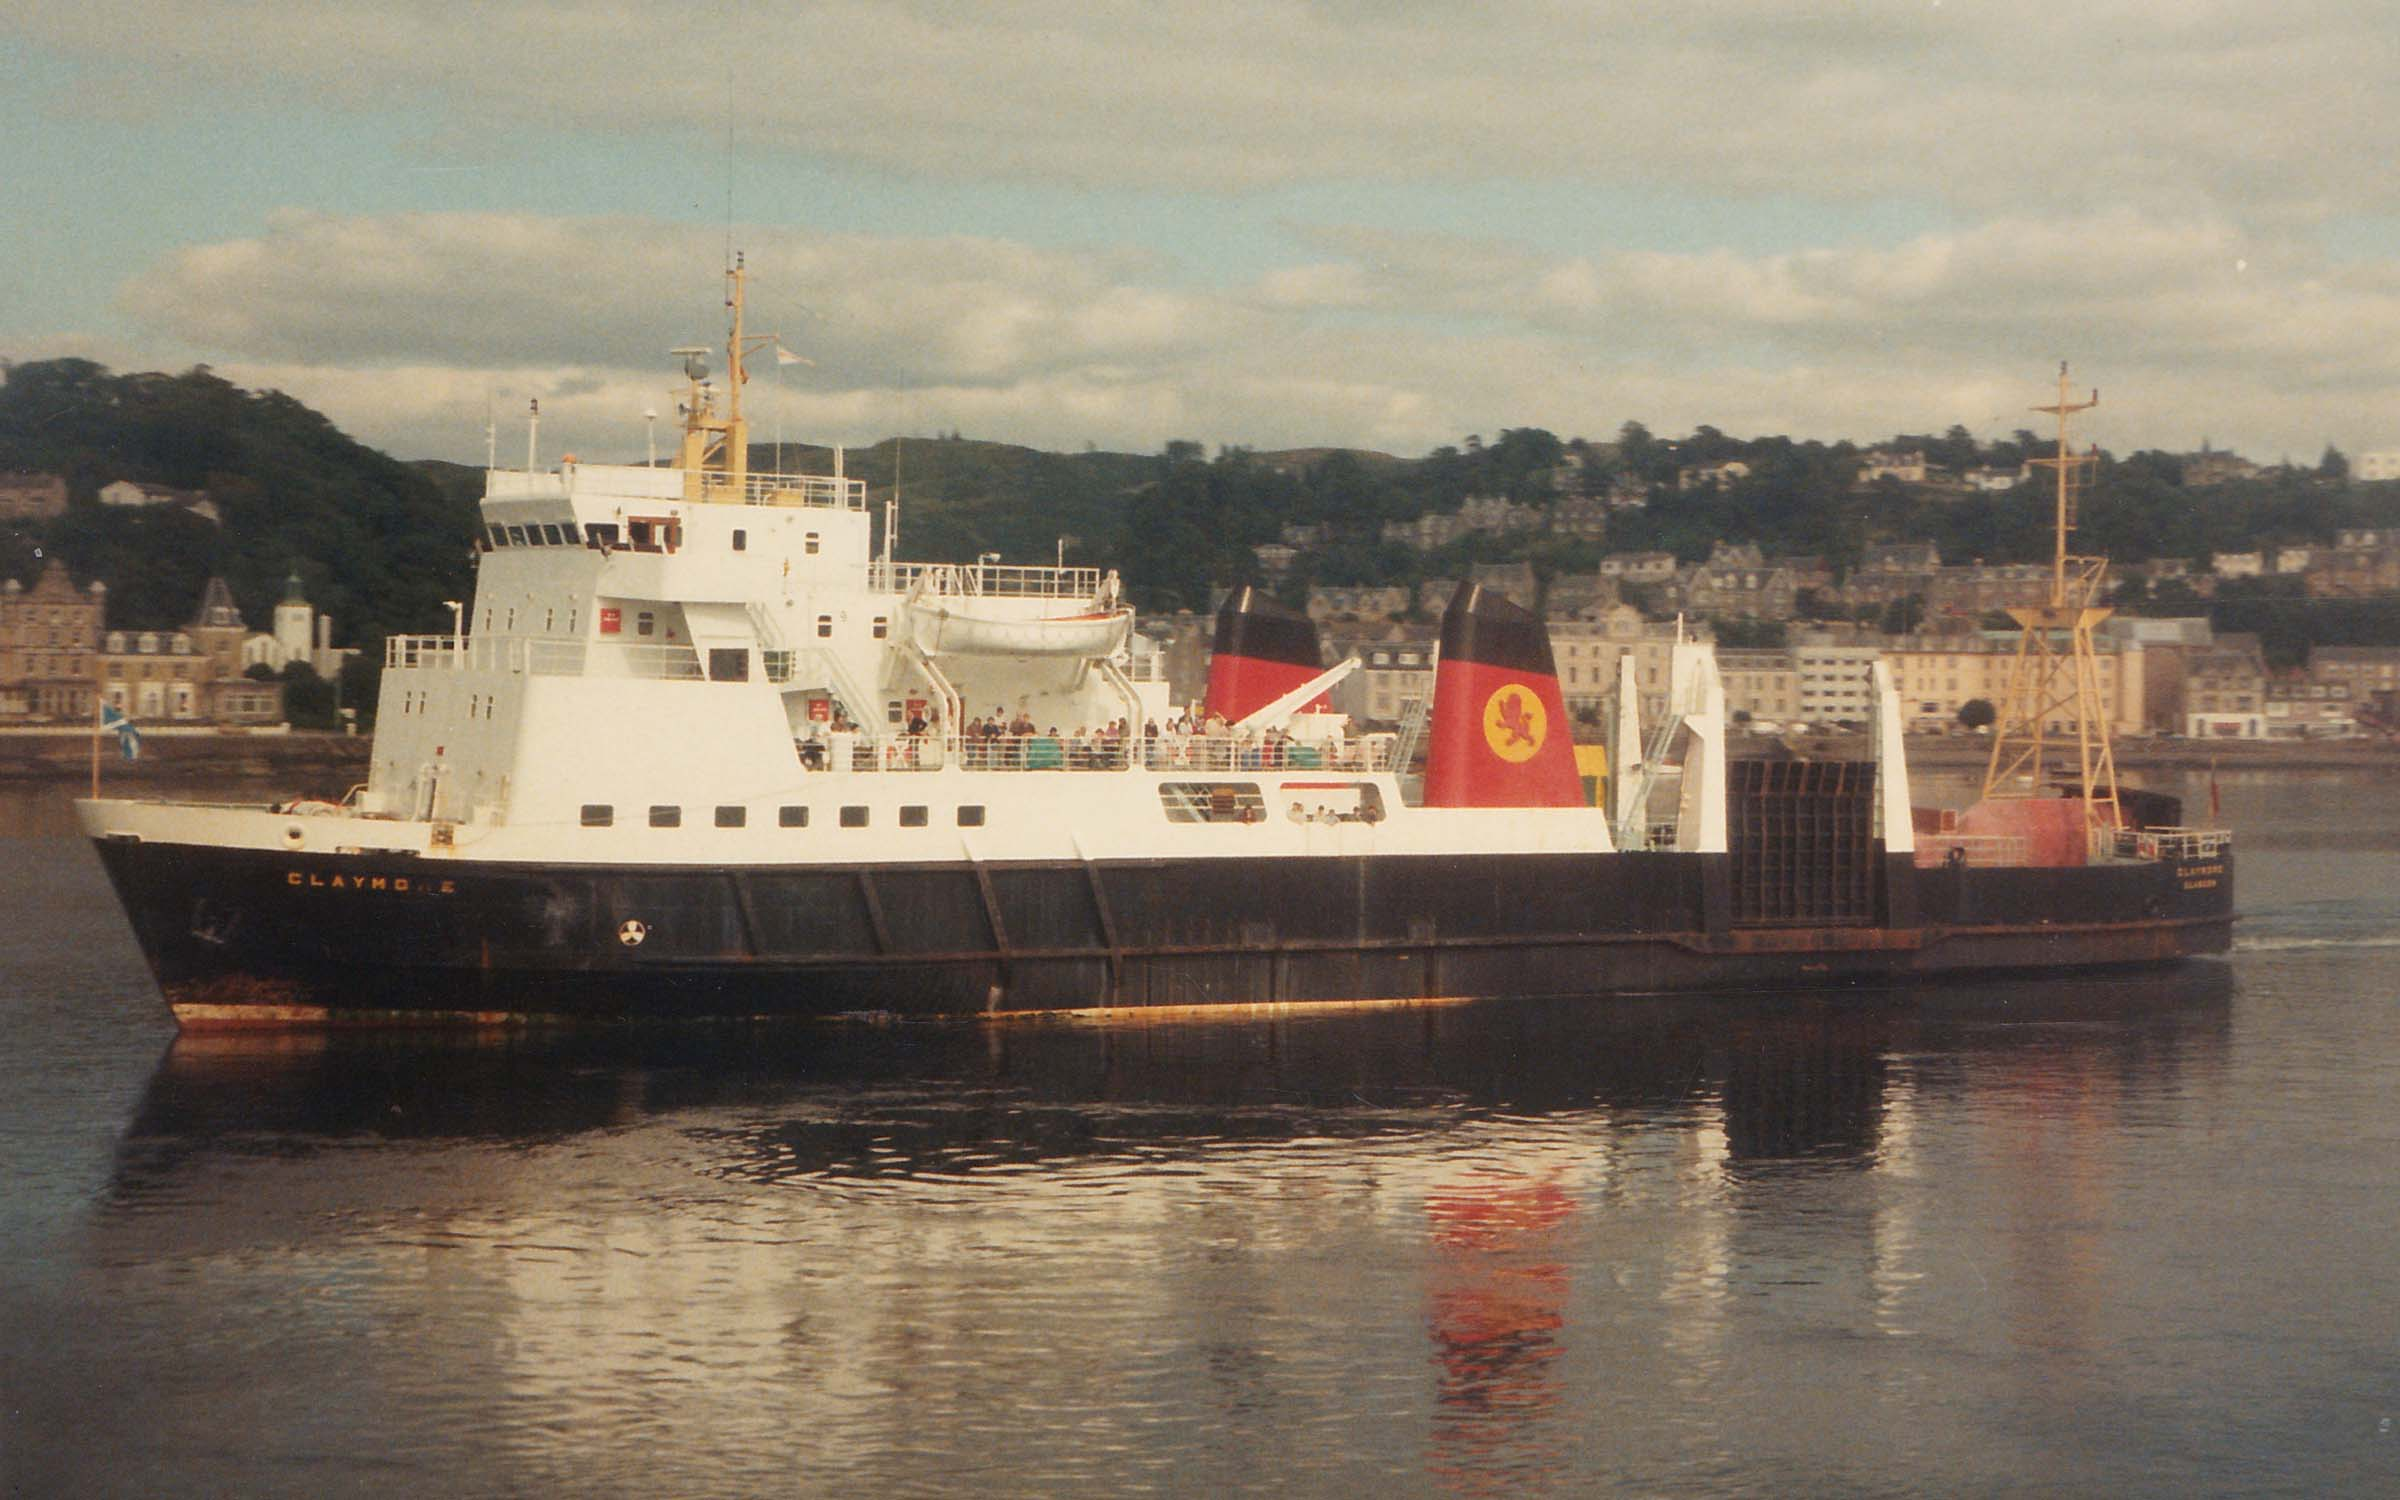 Claymore in Oban Bay (Ships of CalMac)